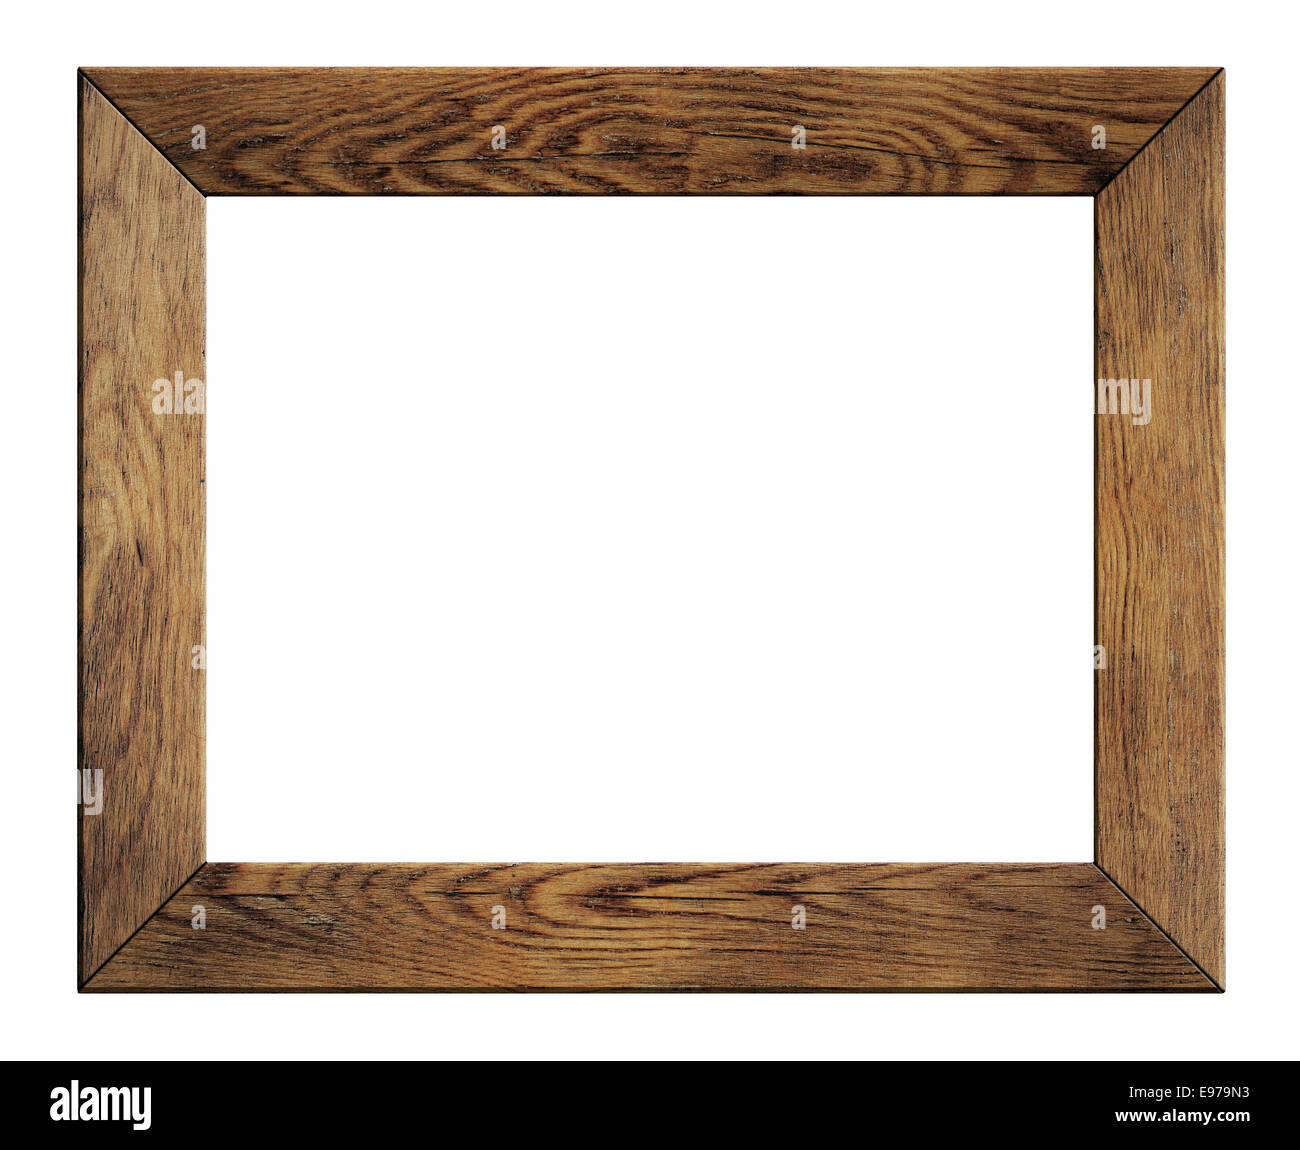 old wood frame isolated - Stock Image